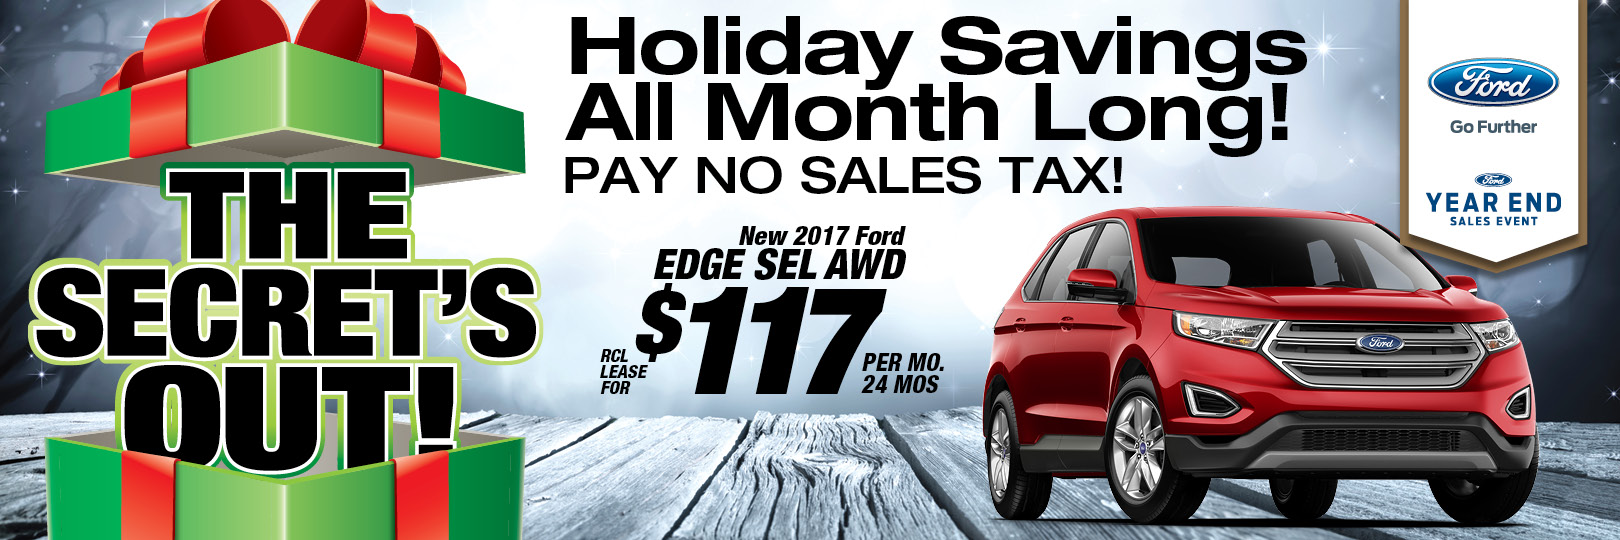 Ford Edge Deals